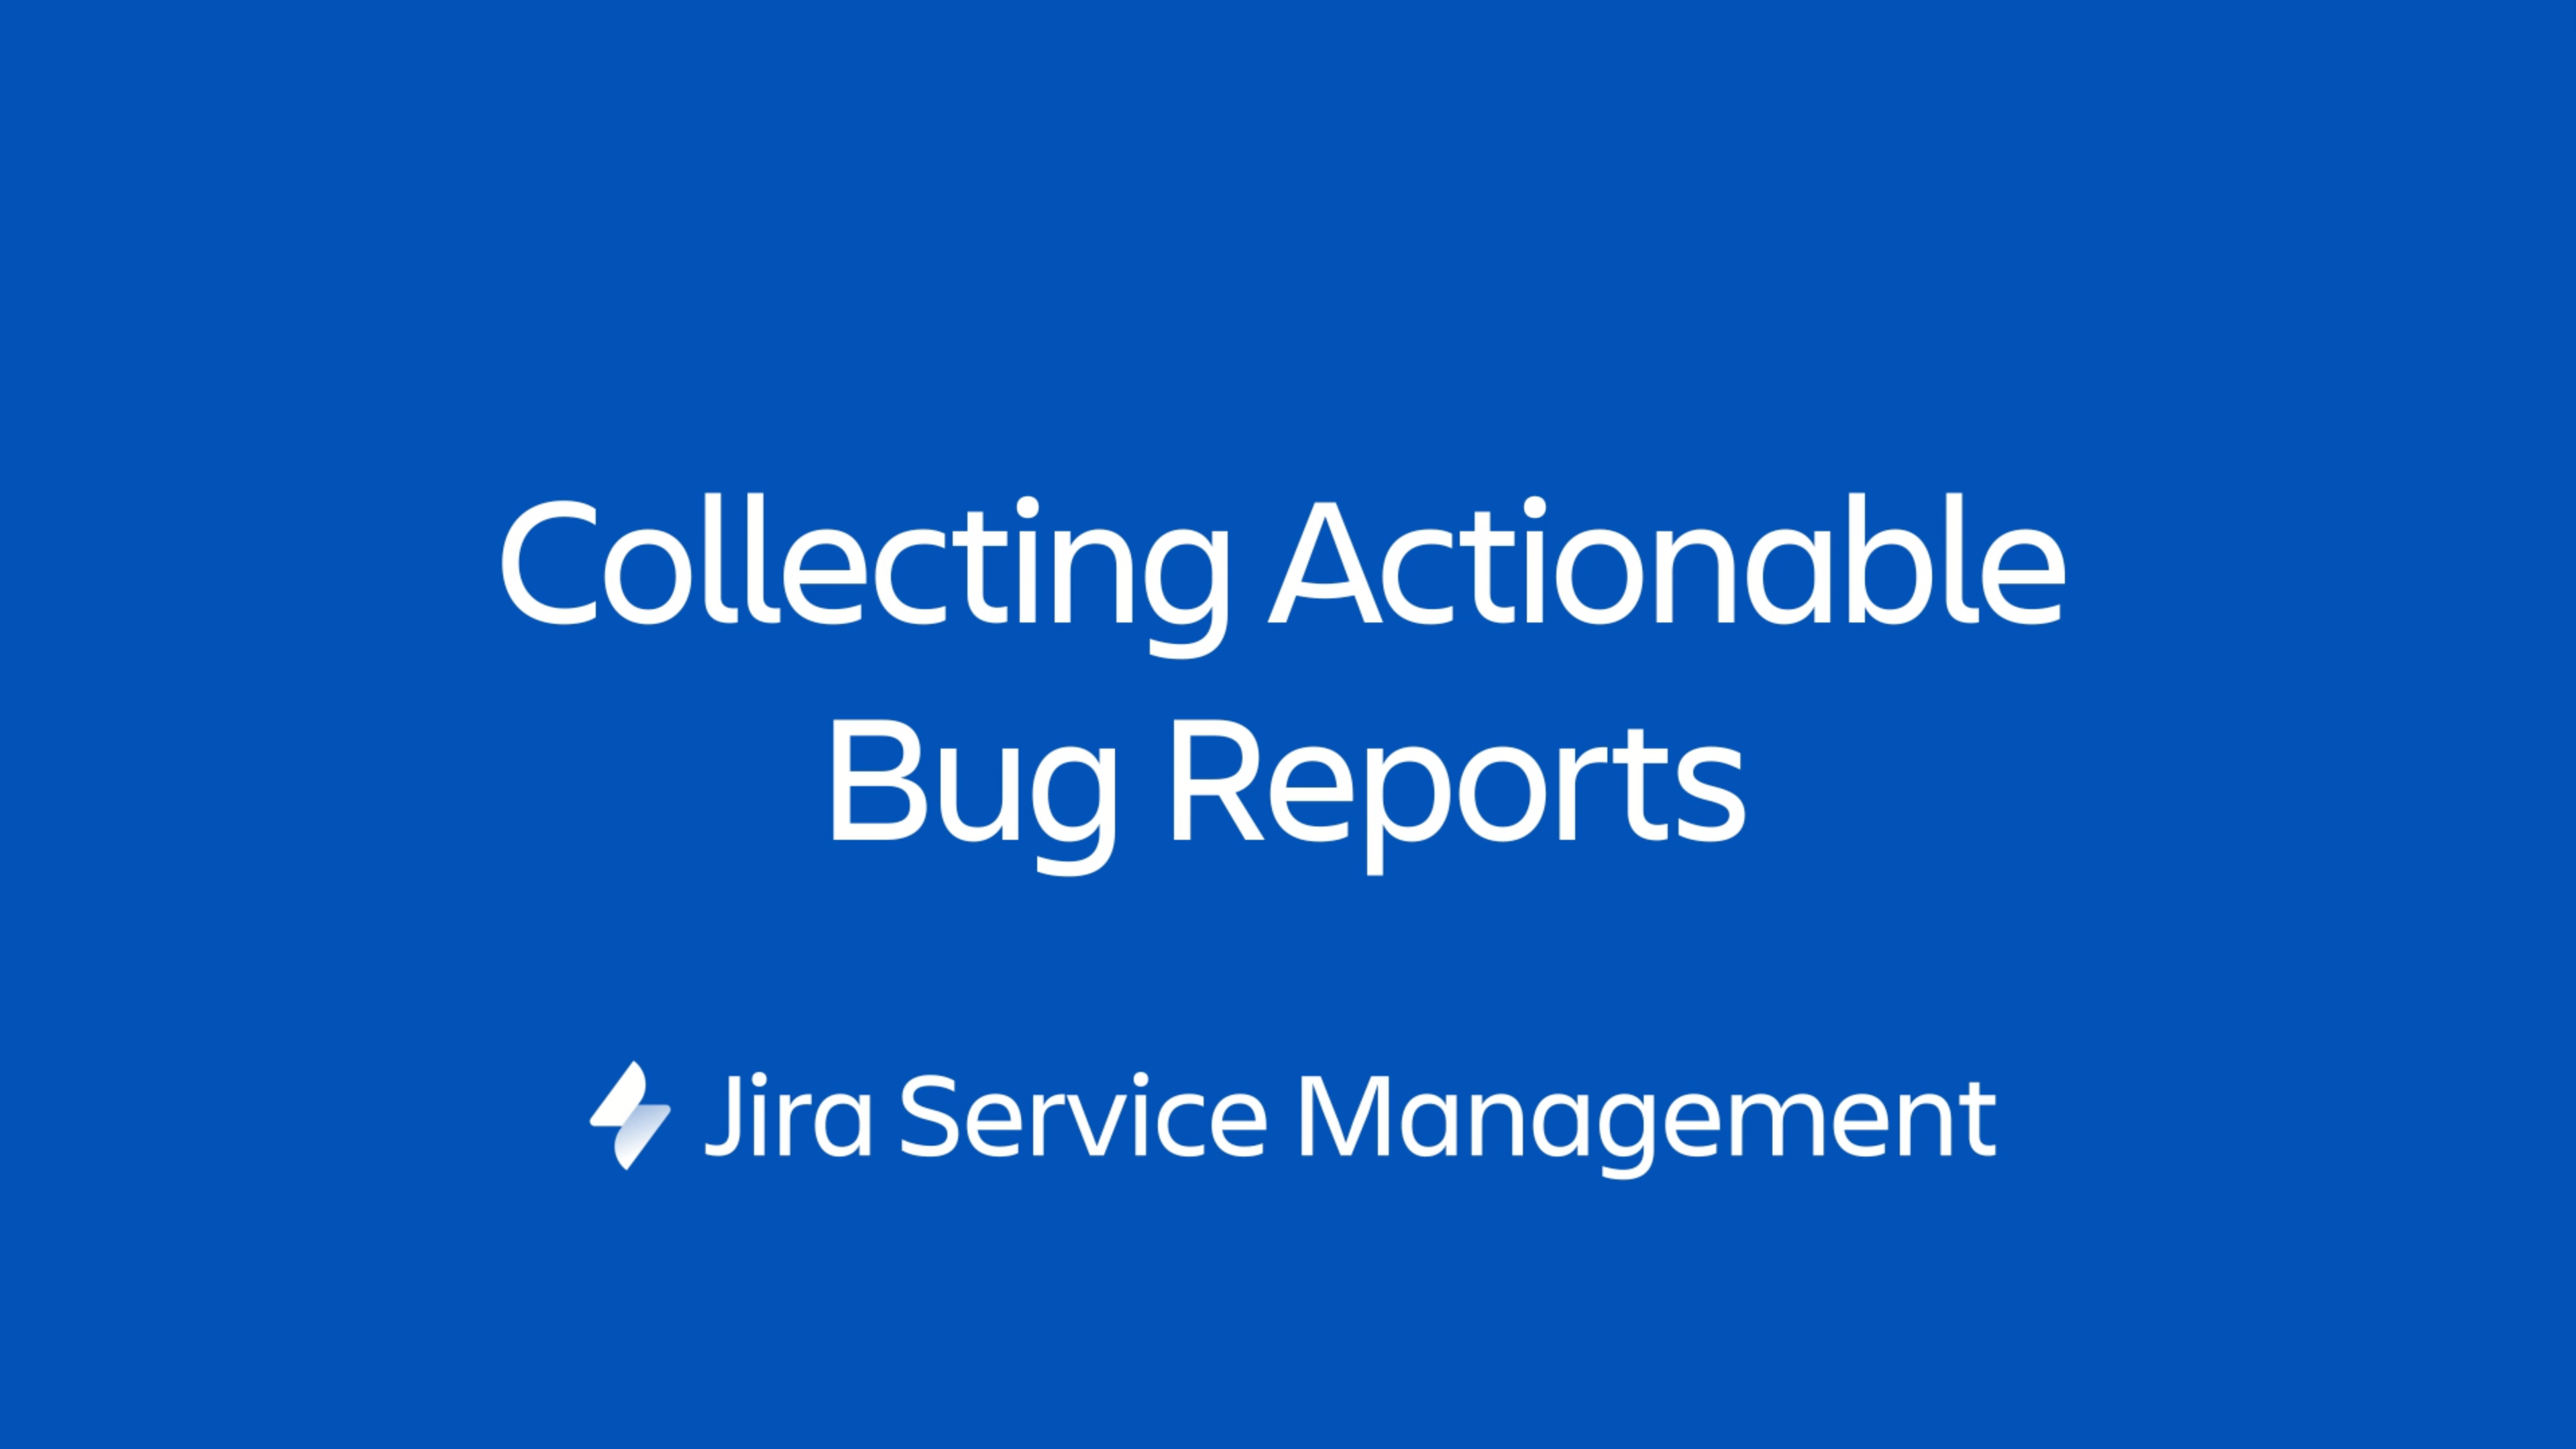 A Jira Service Management Widget is a mini-portal that can be embedded on any web page that you control.